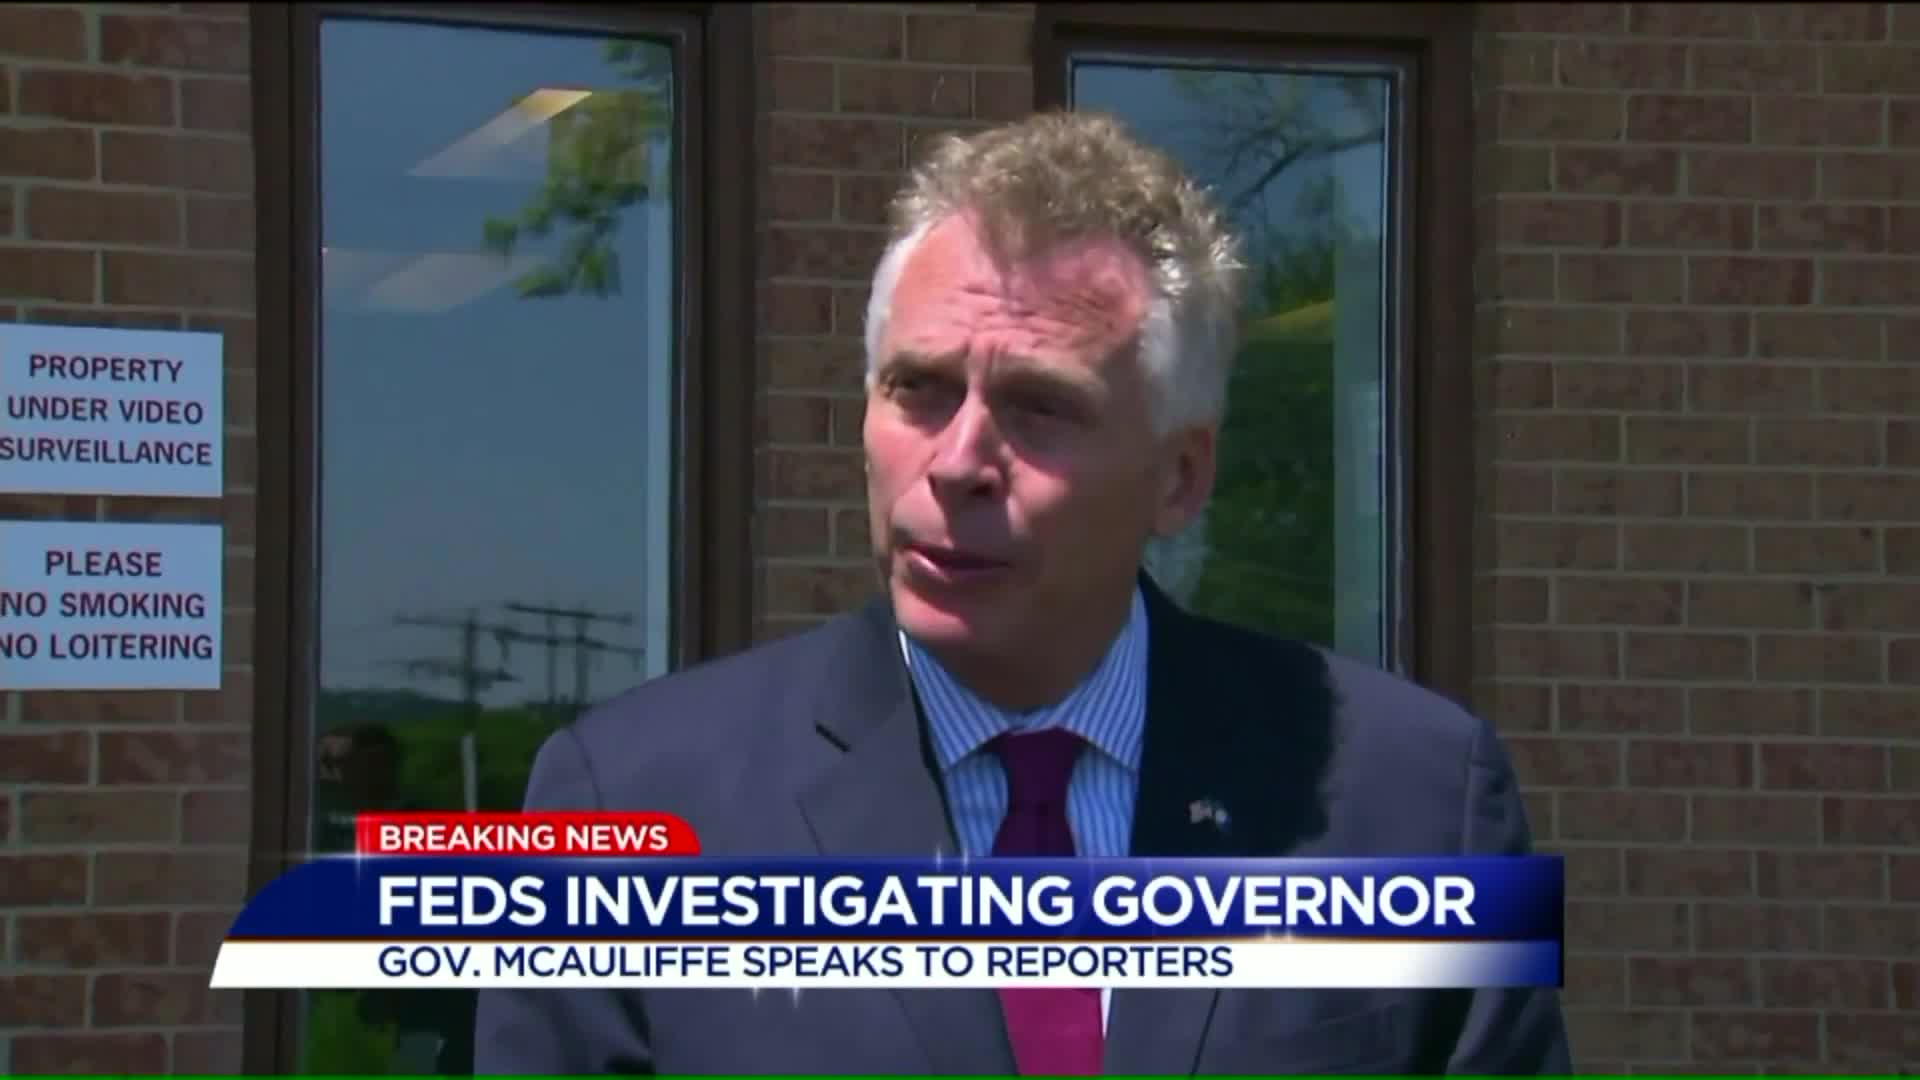 Virginia Gov. Speaks Out Amid Federal Investigation